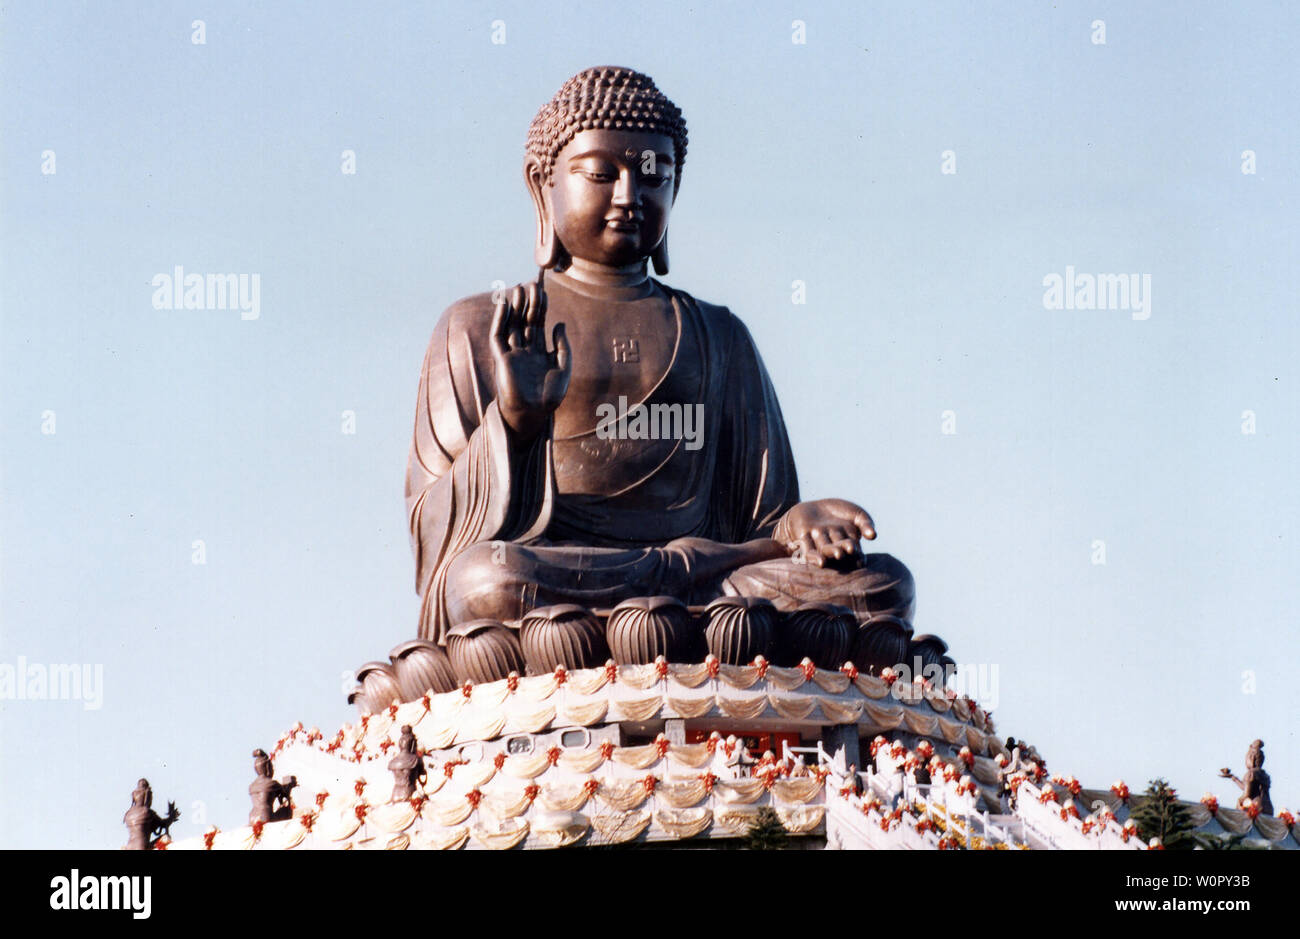 the archive picture of  Tian Tan Buddha, also known as the Big Buddha in 90s - Stock Image